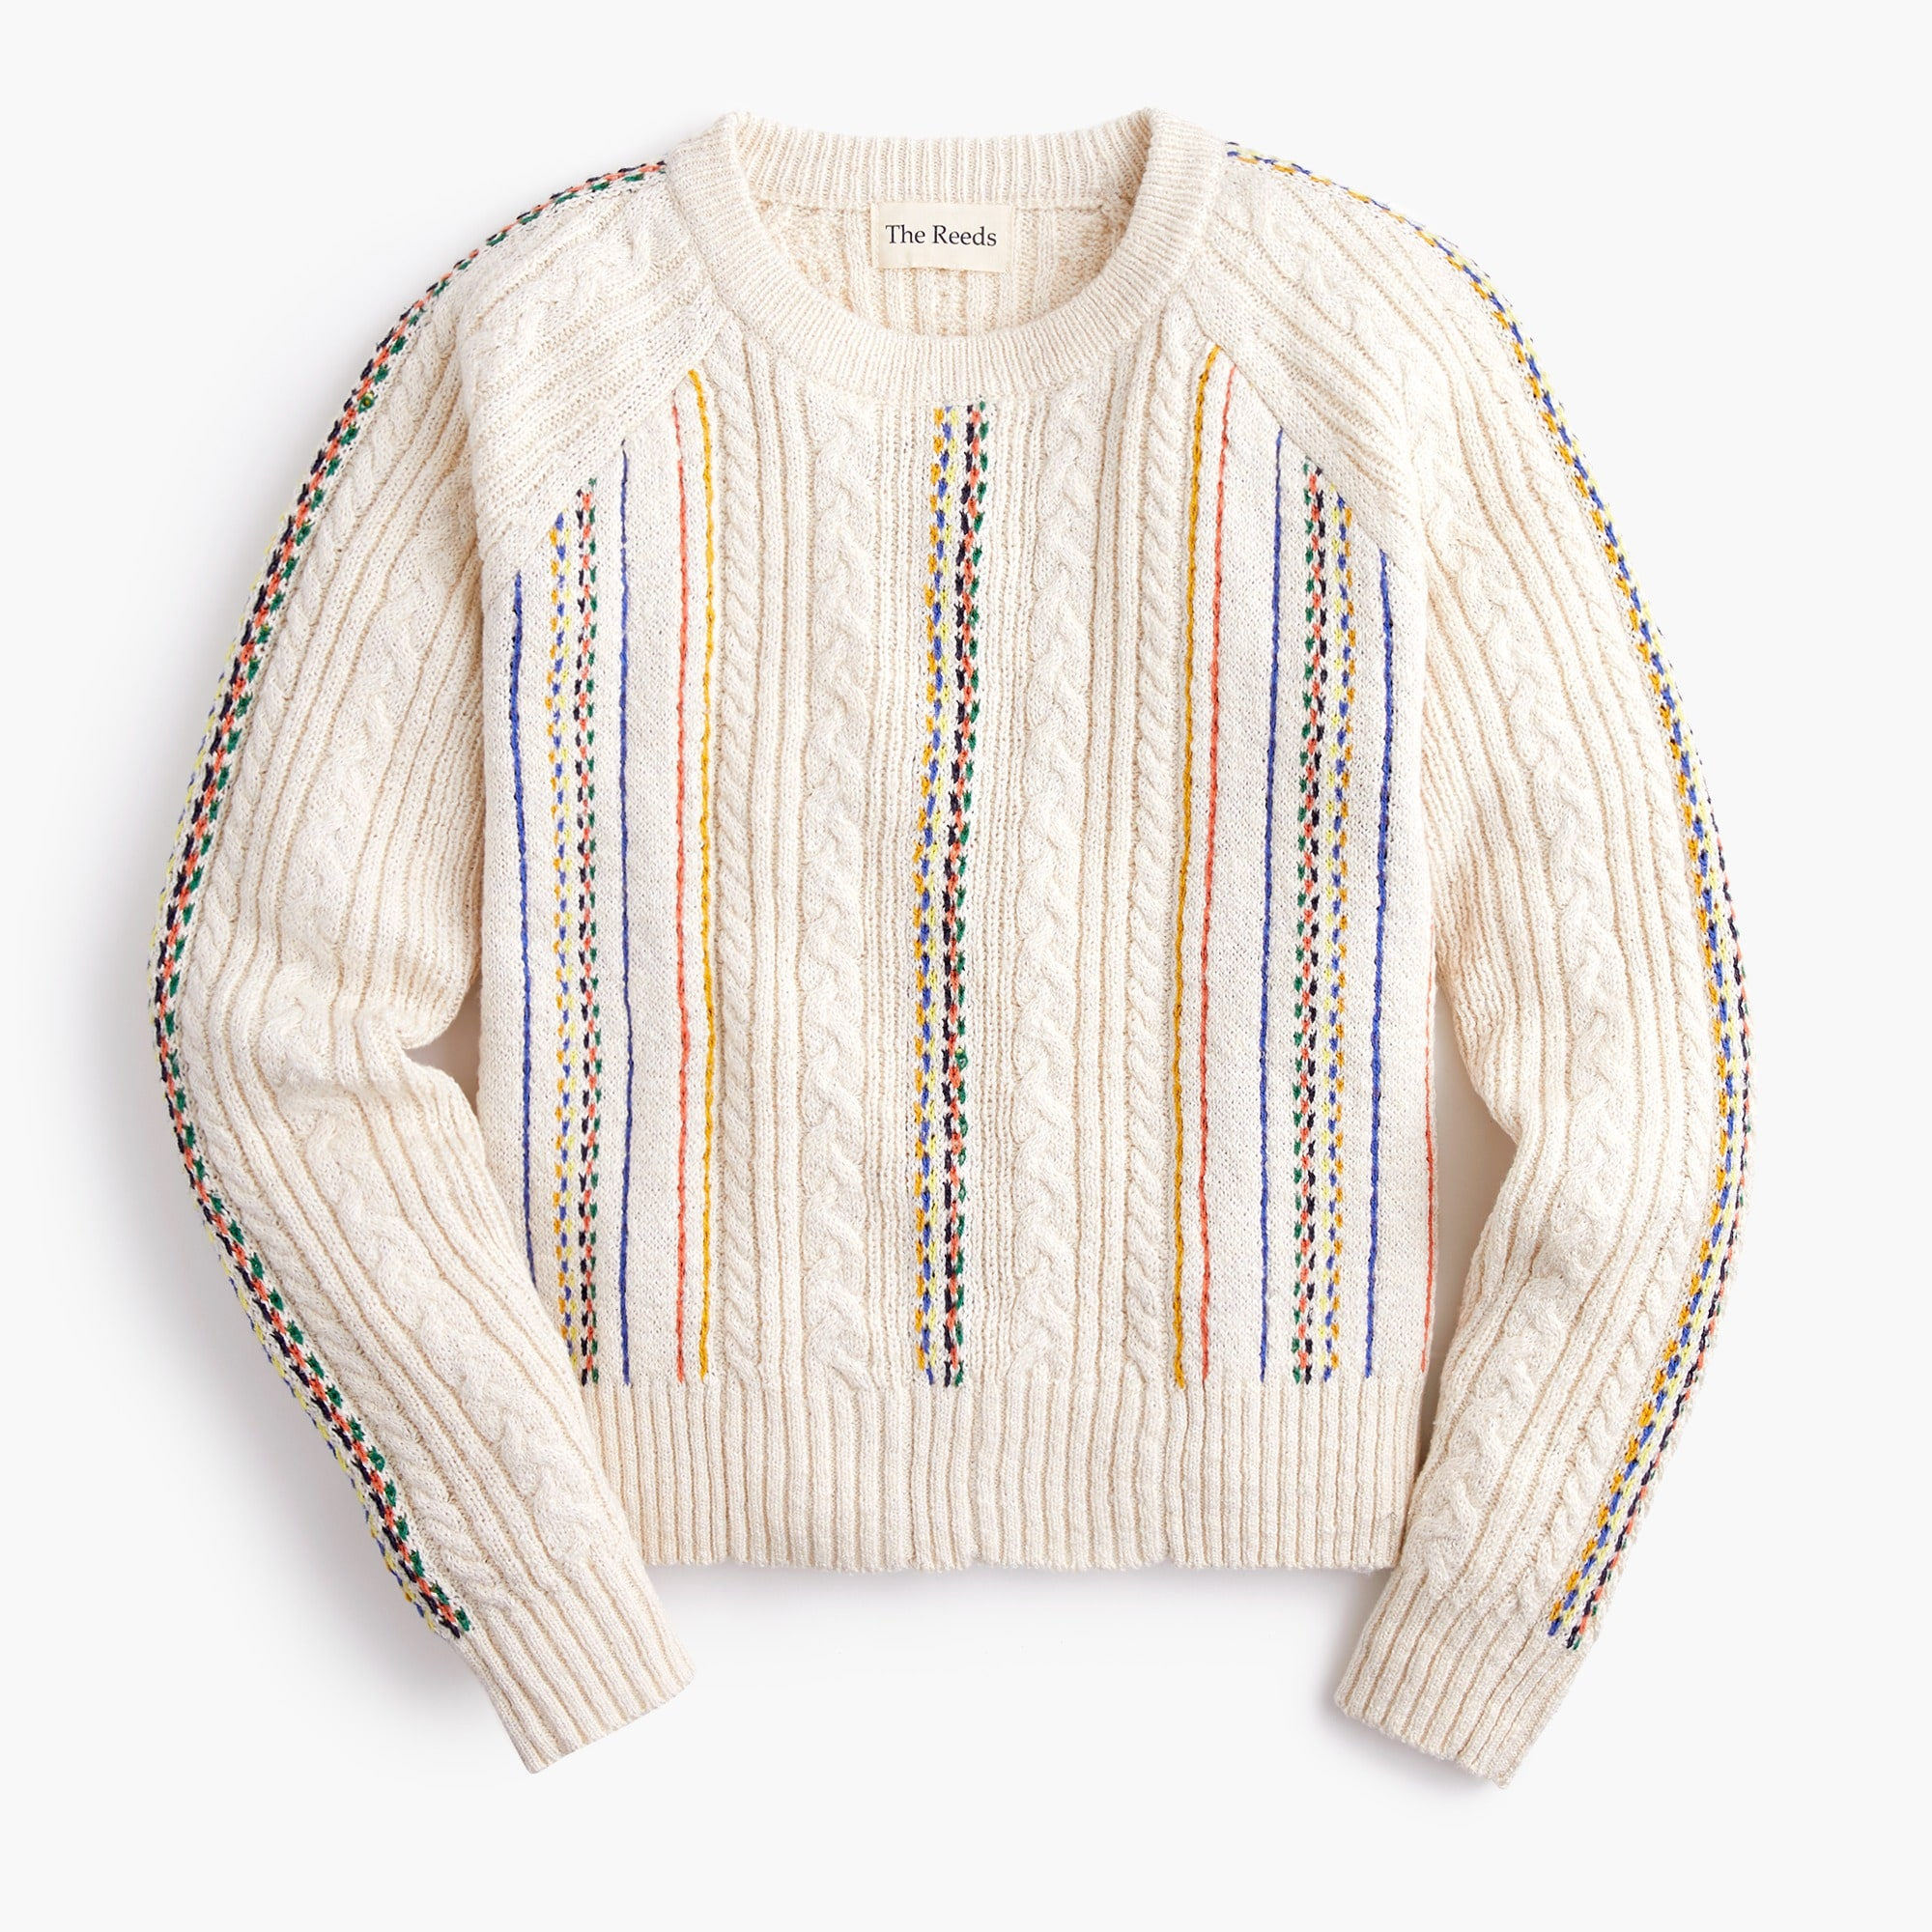 Image 1 for The Reeds X J.Crew rainbow cable-knit crewneck sweater